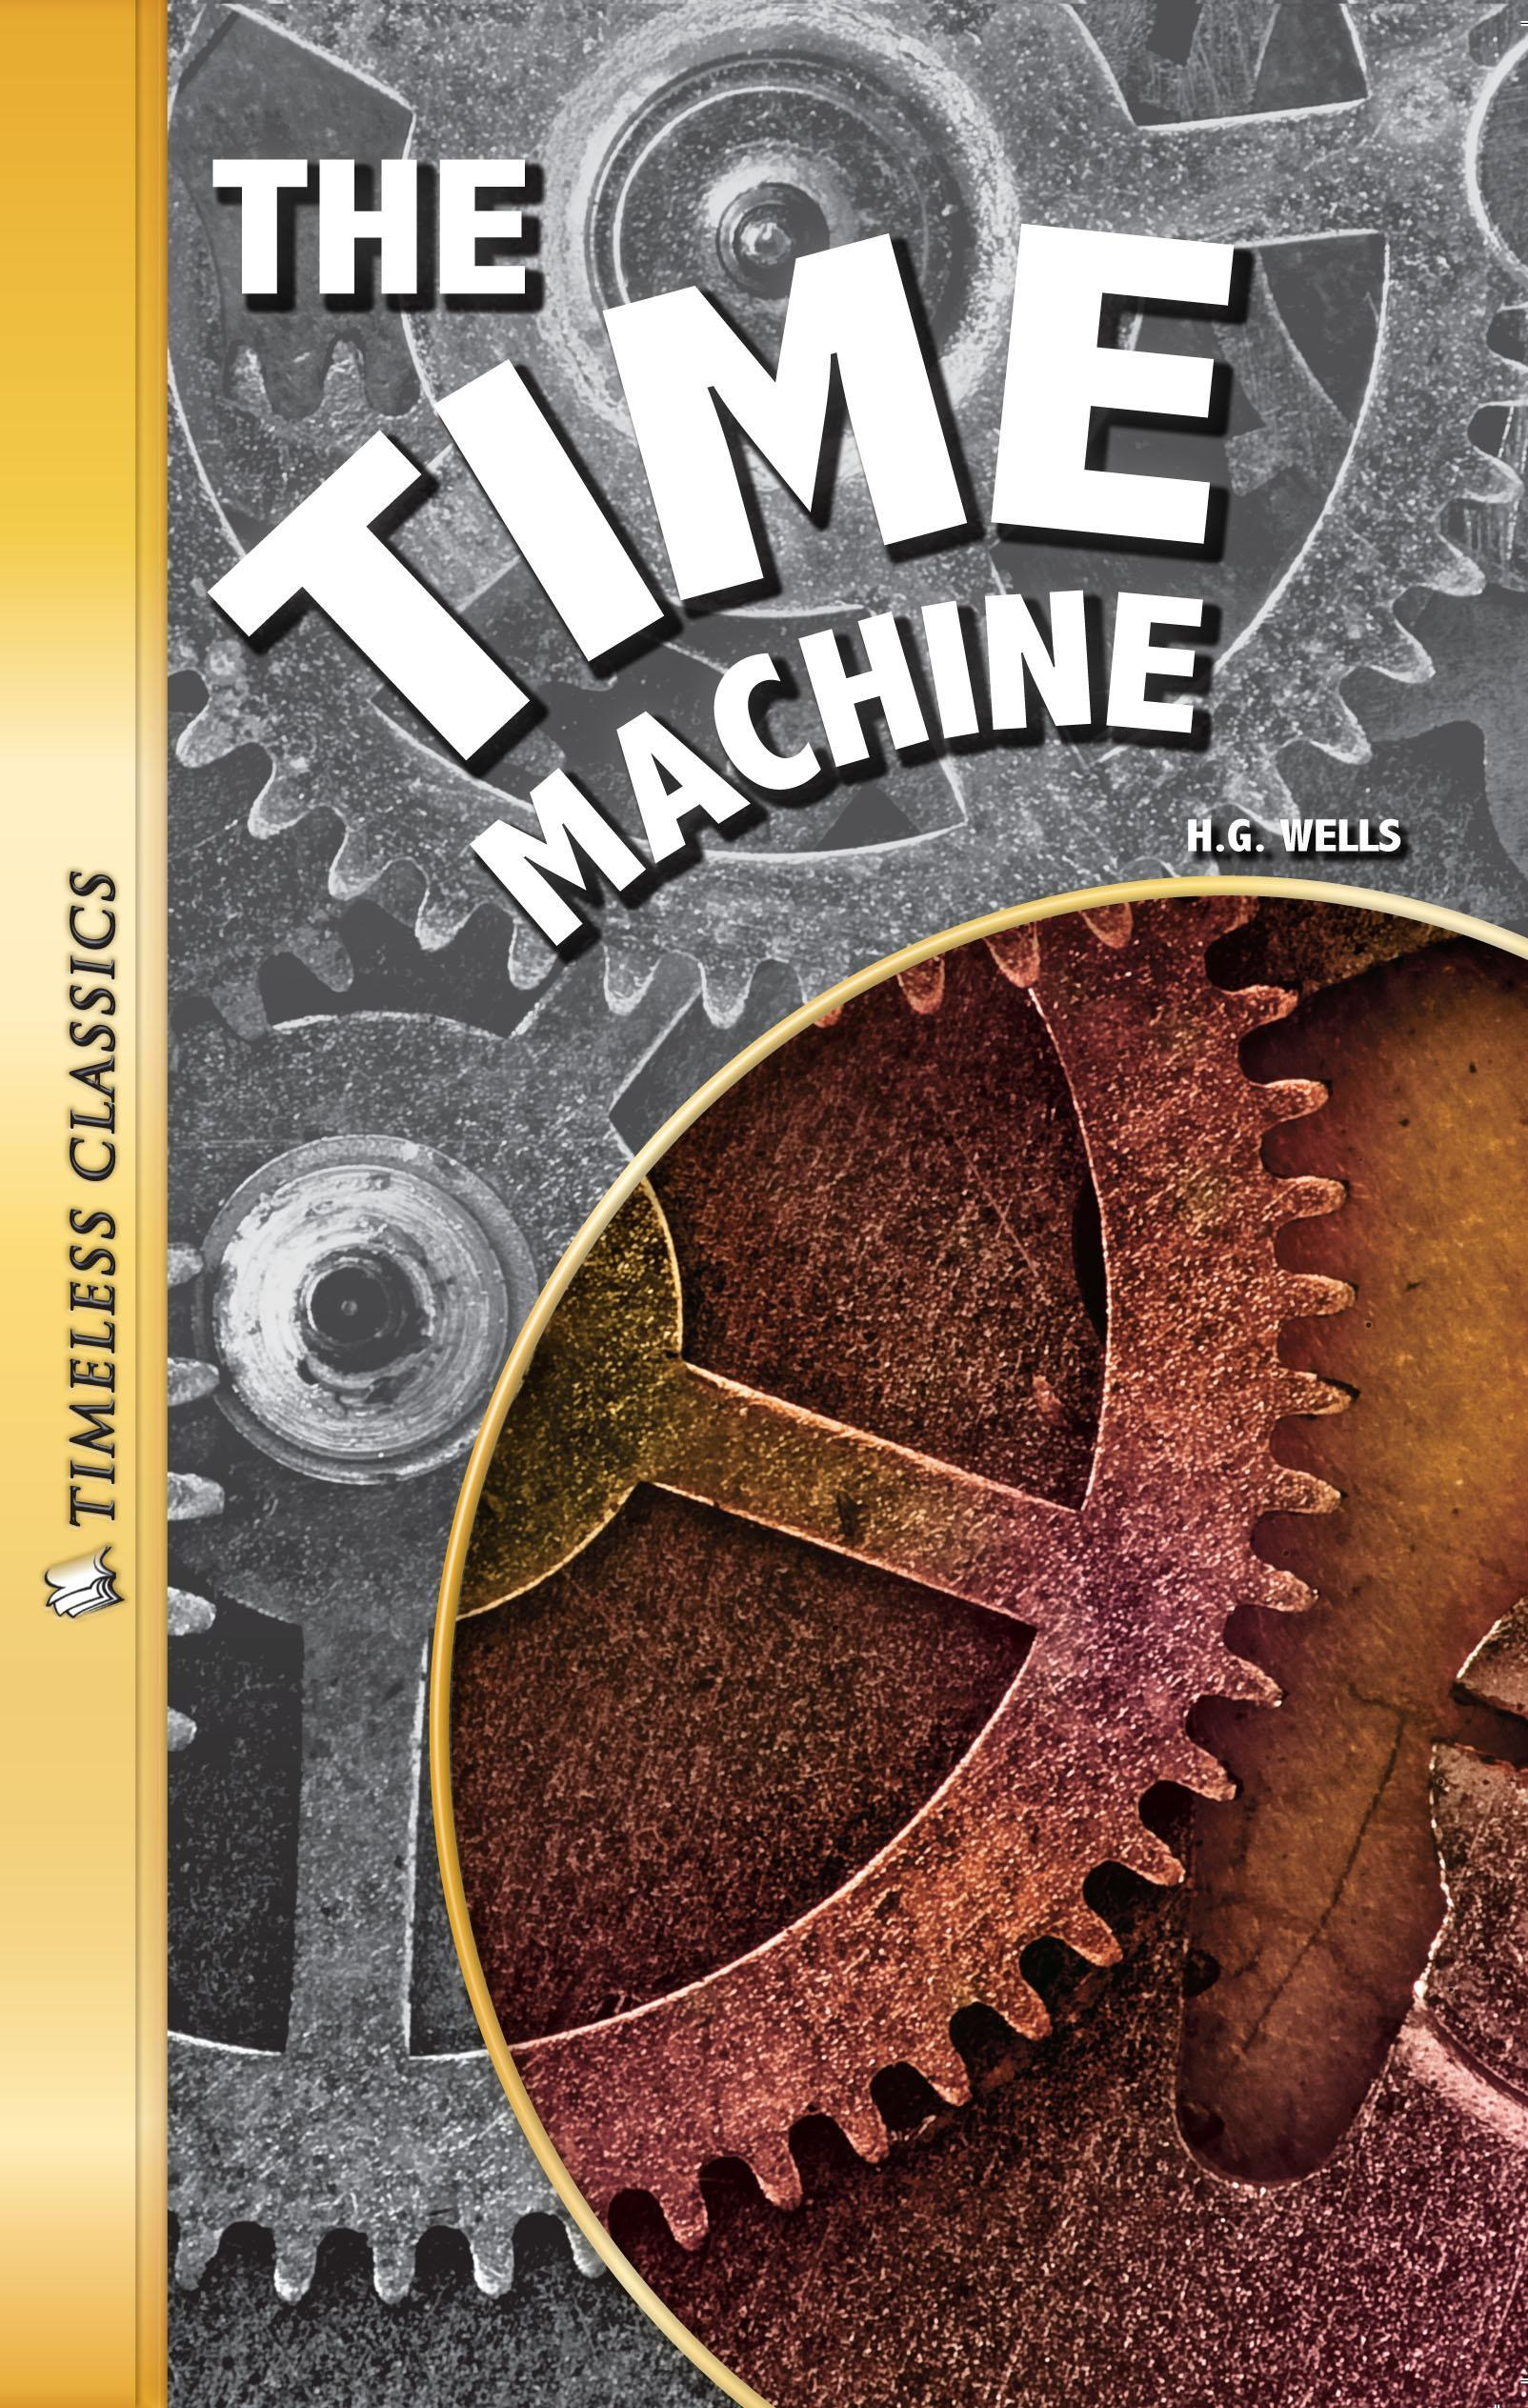 essay on time machine by h.g. wells Home → sparknotes → literature study guides → the time machine the time machine hg wells table of contents the 25 worst ways to start your college essay.